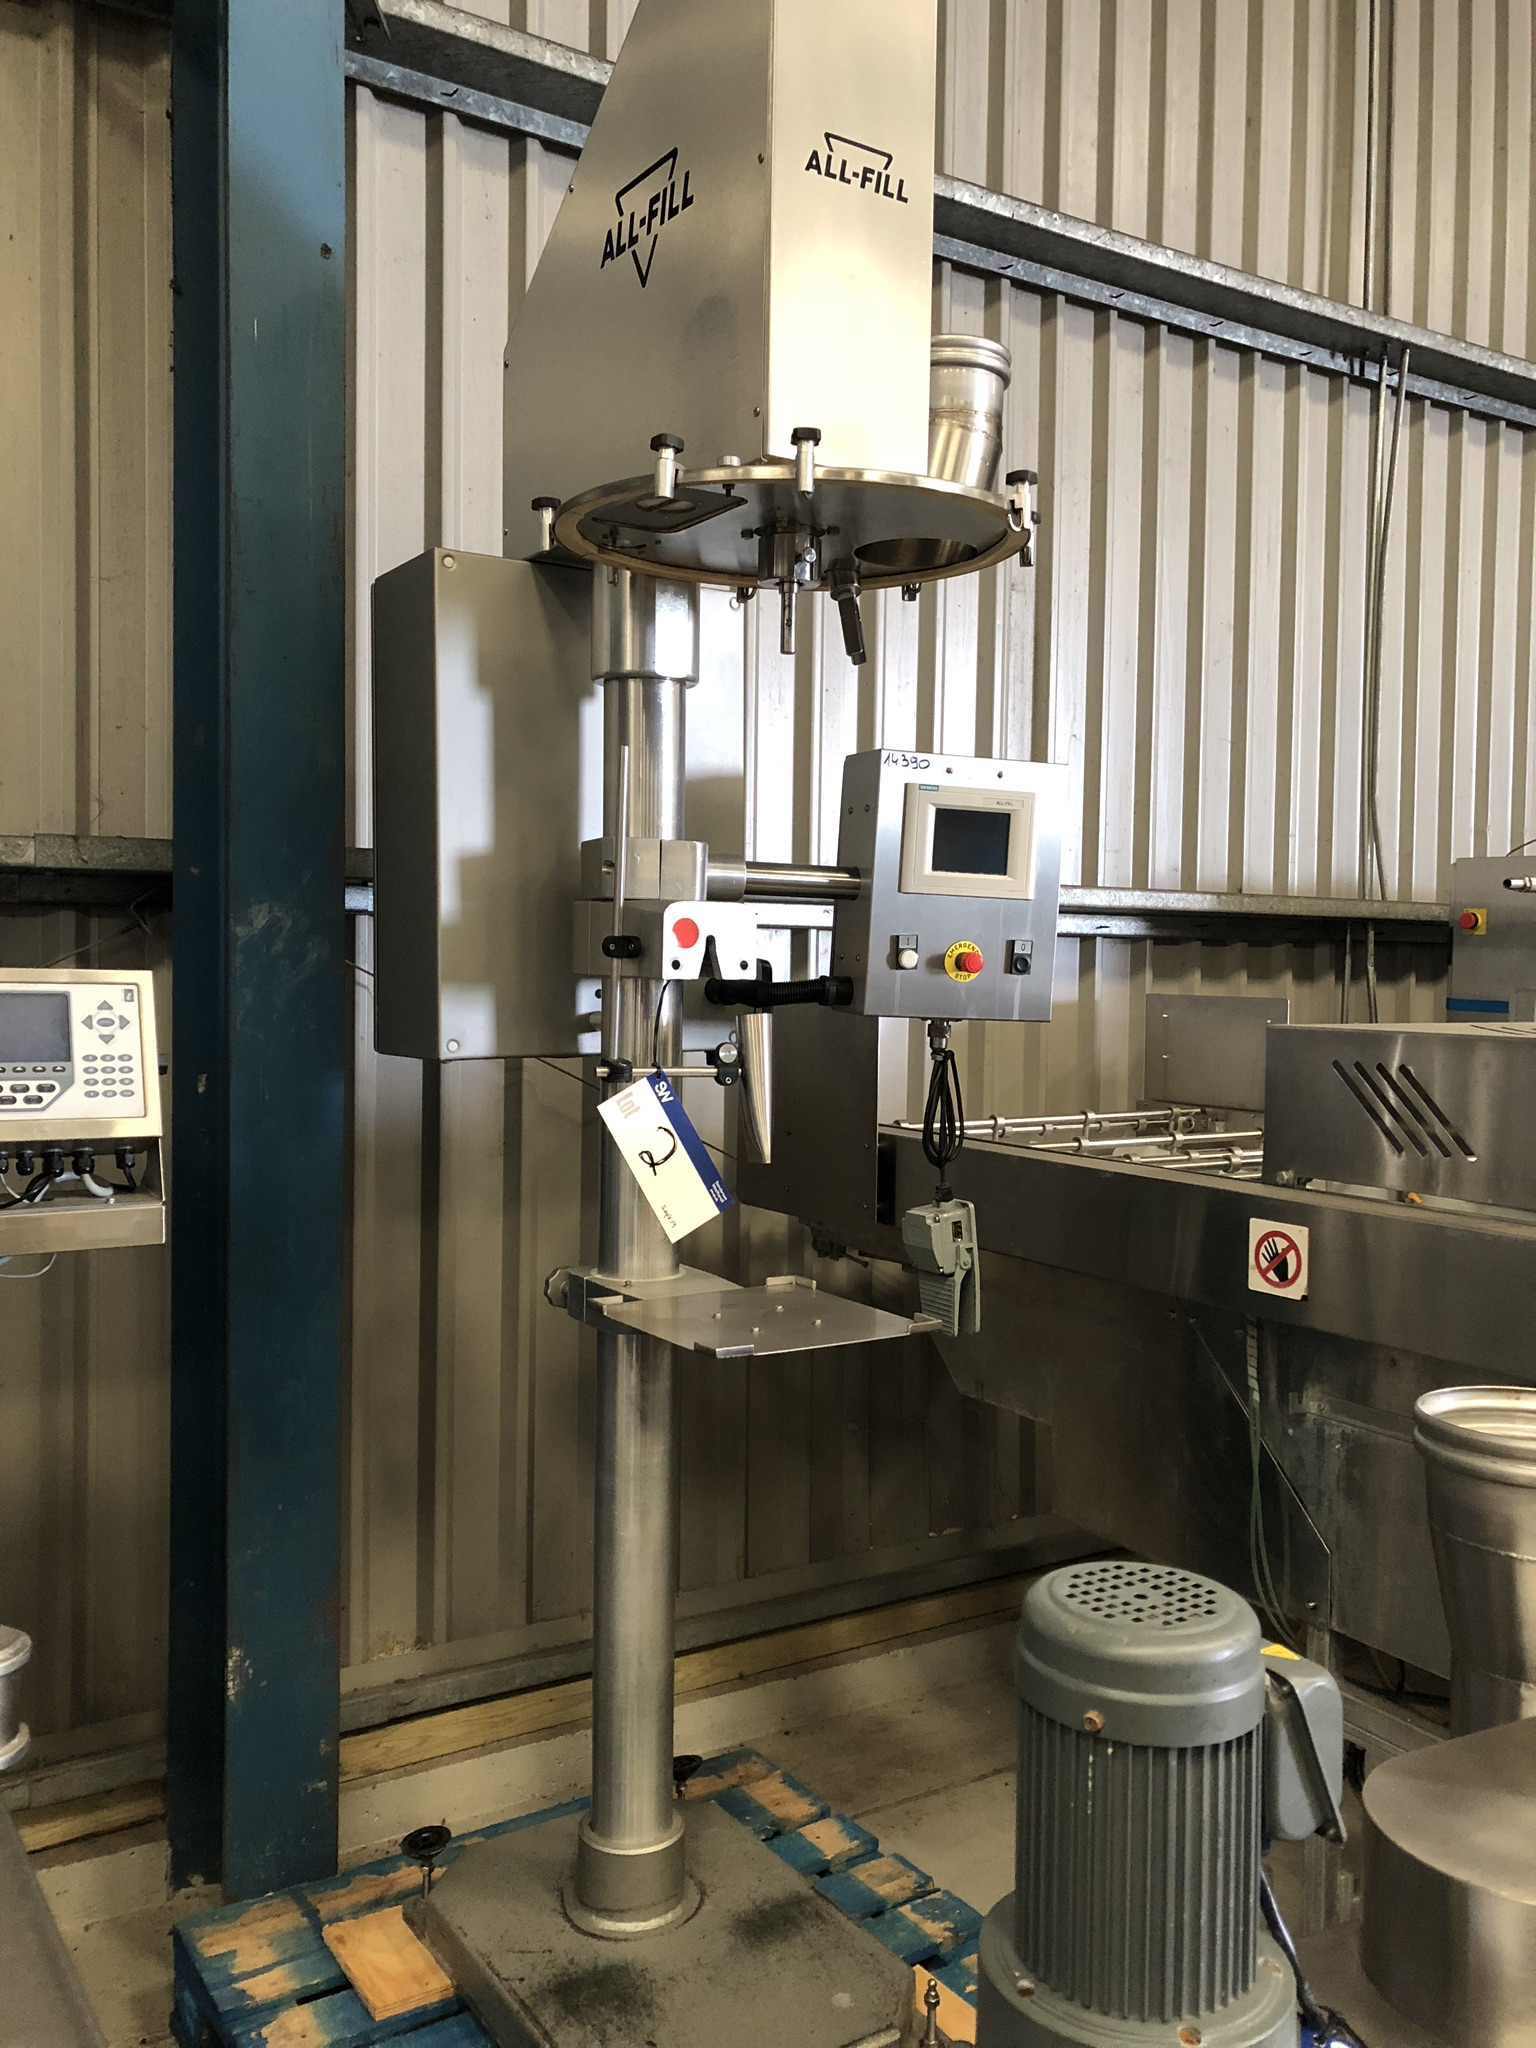 AllFill POWDER DEPOSITOR, with Siemens control panel, approx. 2.6m high x 1m x 1m, lift out charge -